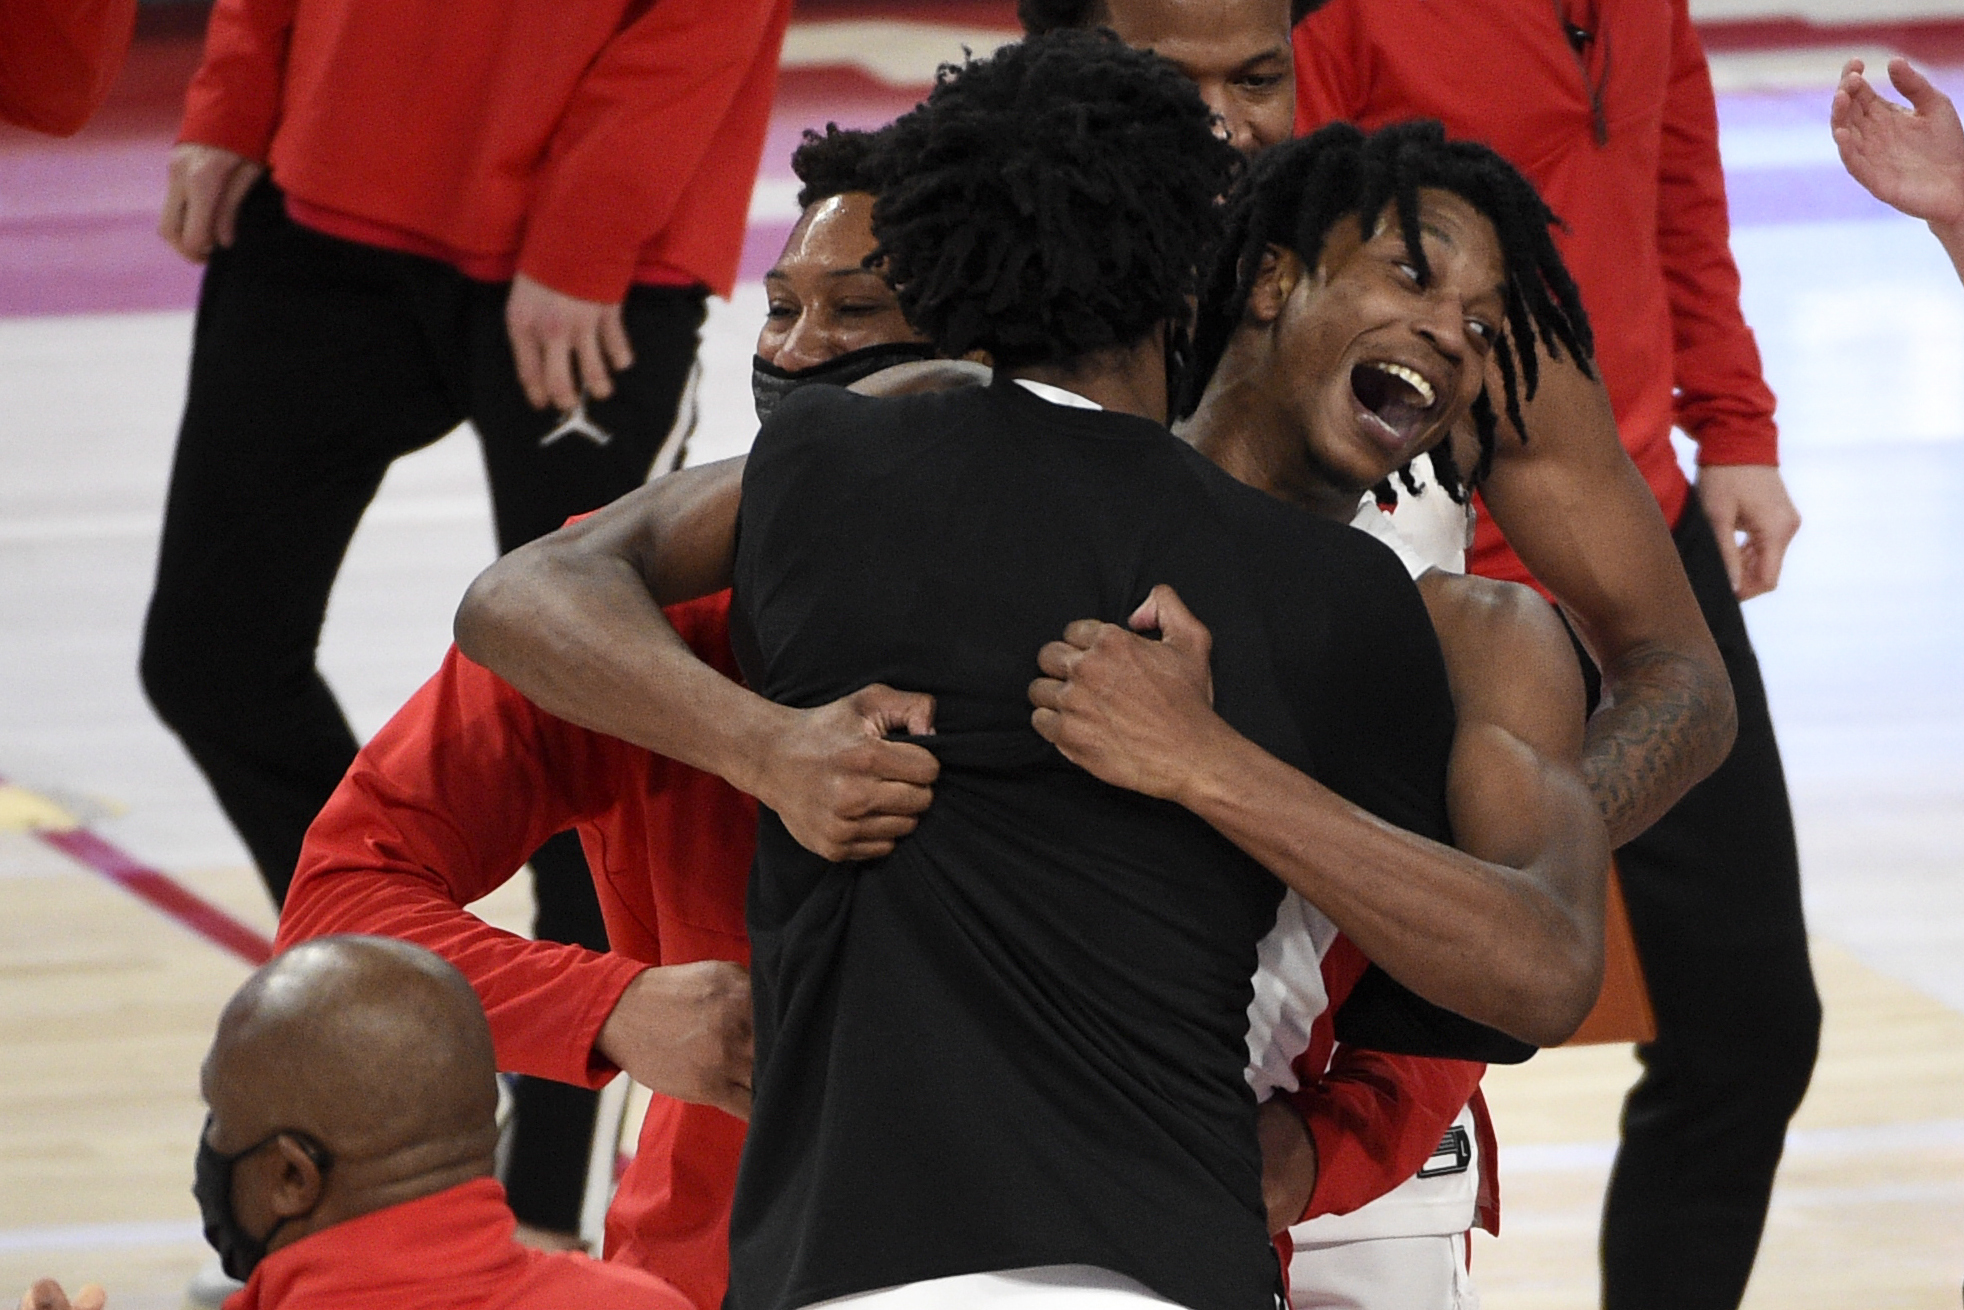 Welcome to March: No. 9 Houston survives Memphis on improbable buzzer-beating heave - Yahoo Sports